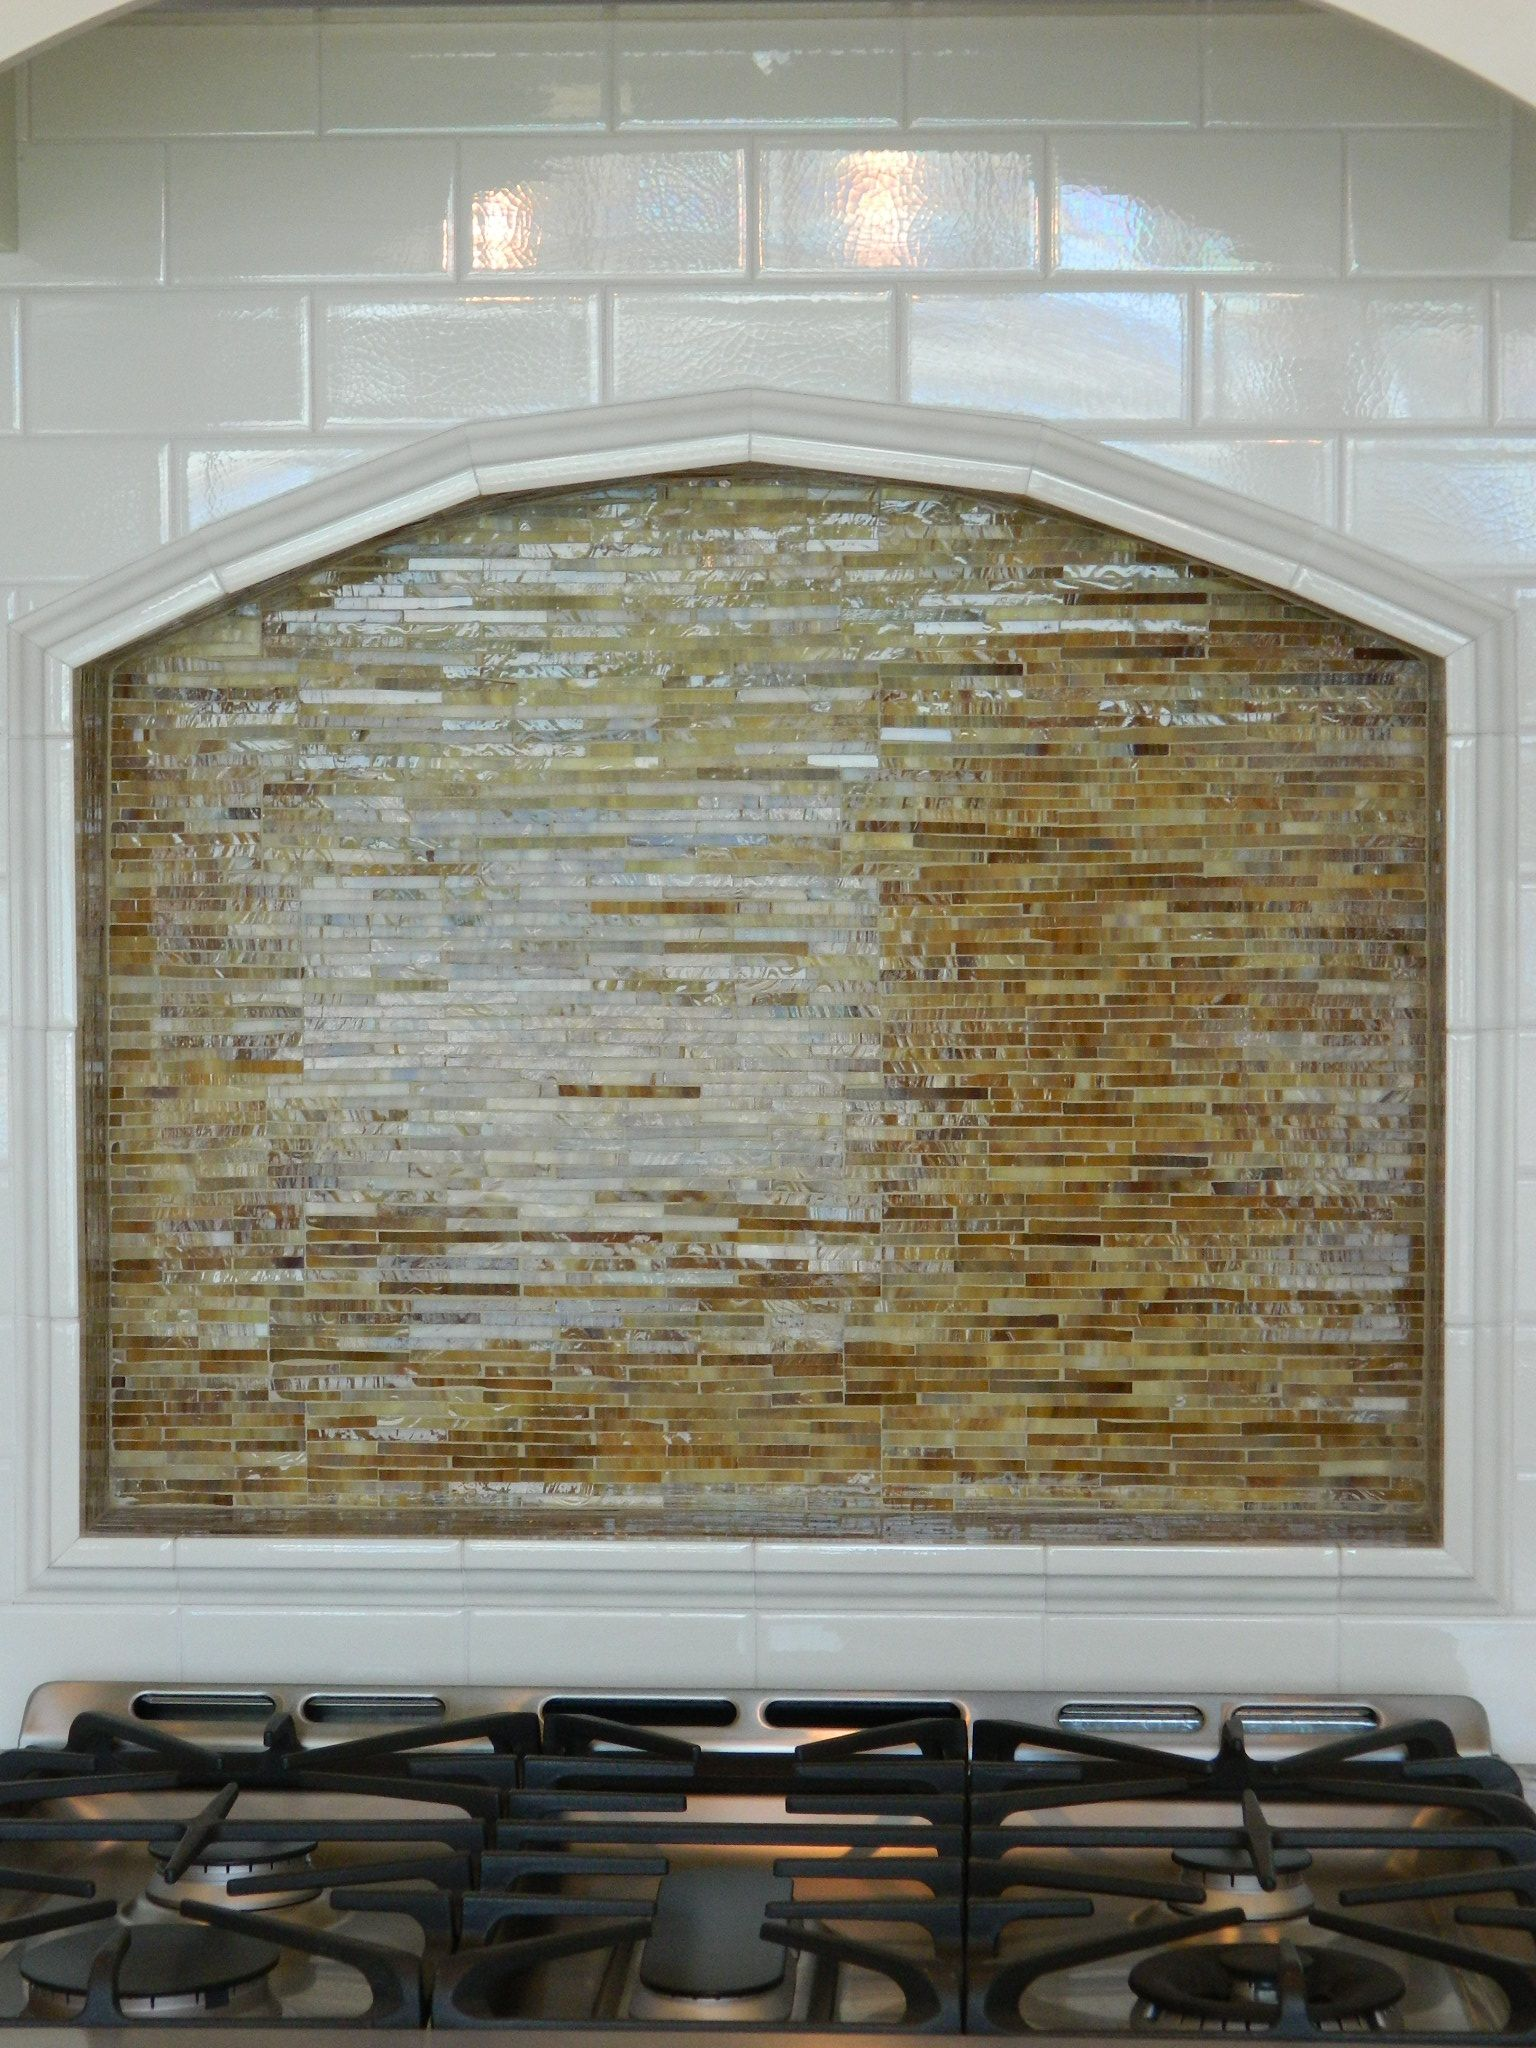 Framed arched kitchen niche behind cooktop with stacked glass tile avb custom home builders commercial construction company white subway tile backsplashkitchen dailygadgetfo Choice Image